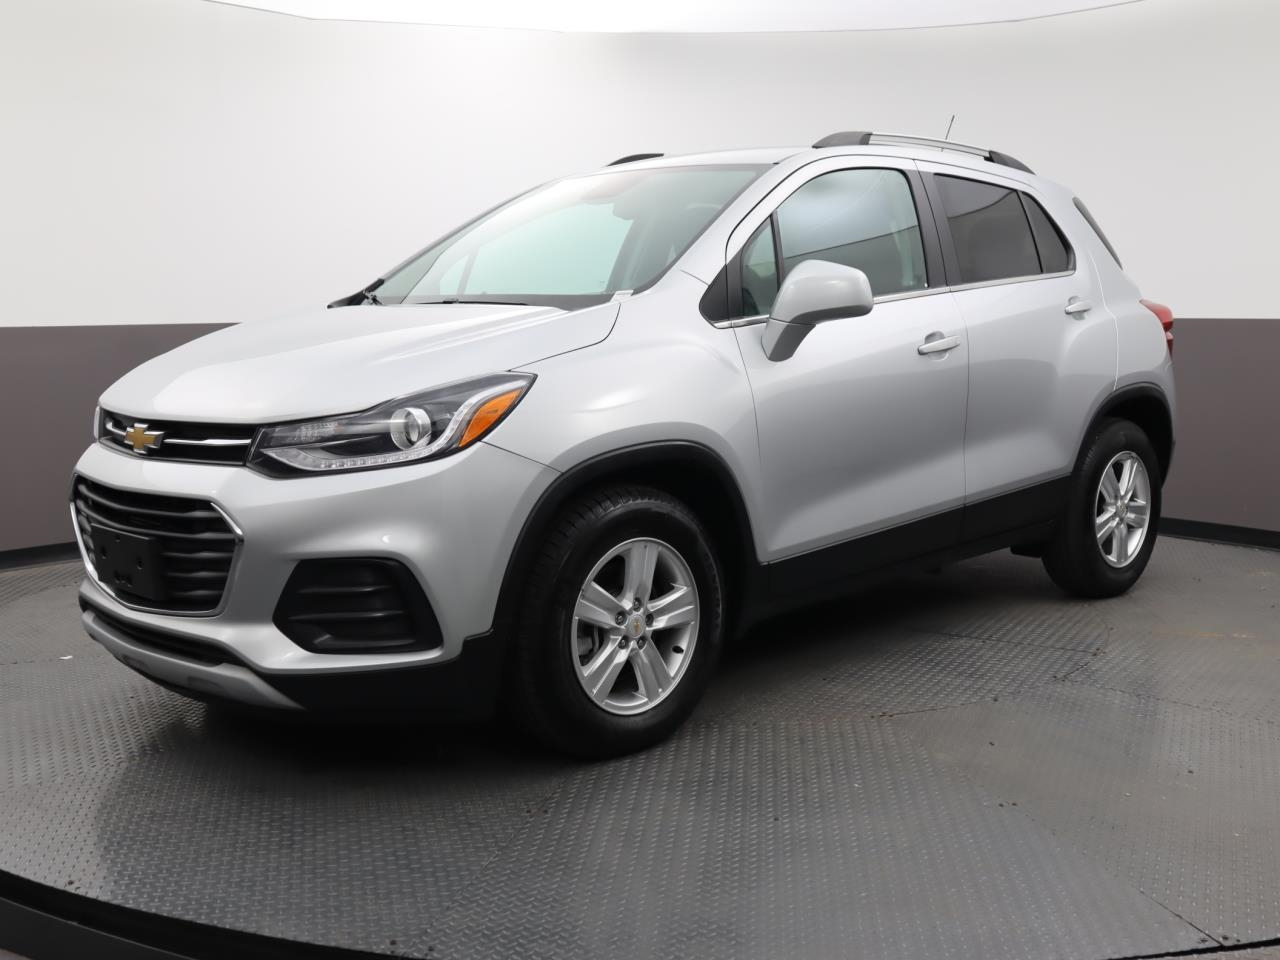 Used CHEVROLET TRAX 2017 MIAMI LT